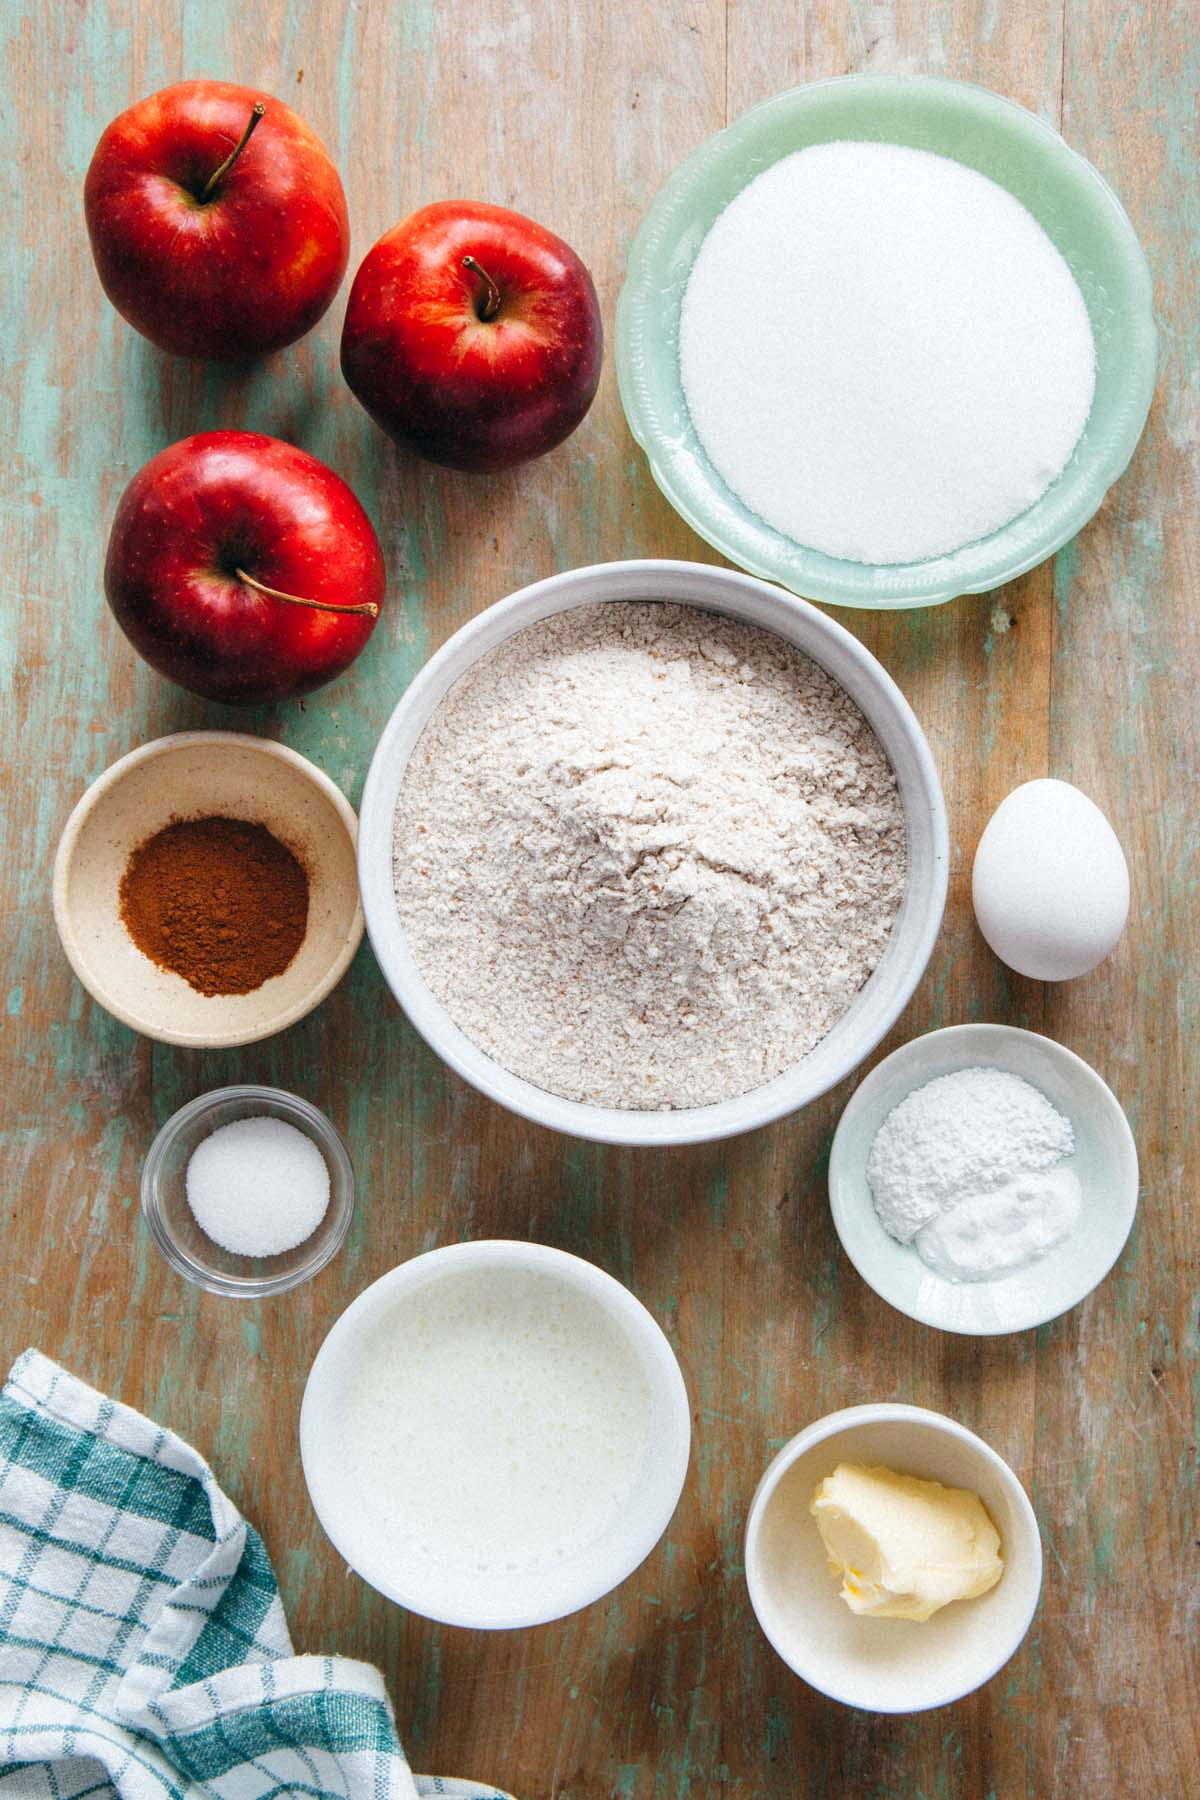 Ingredients to make apple cinnamon quick bread.